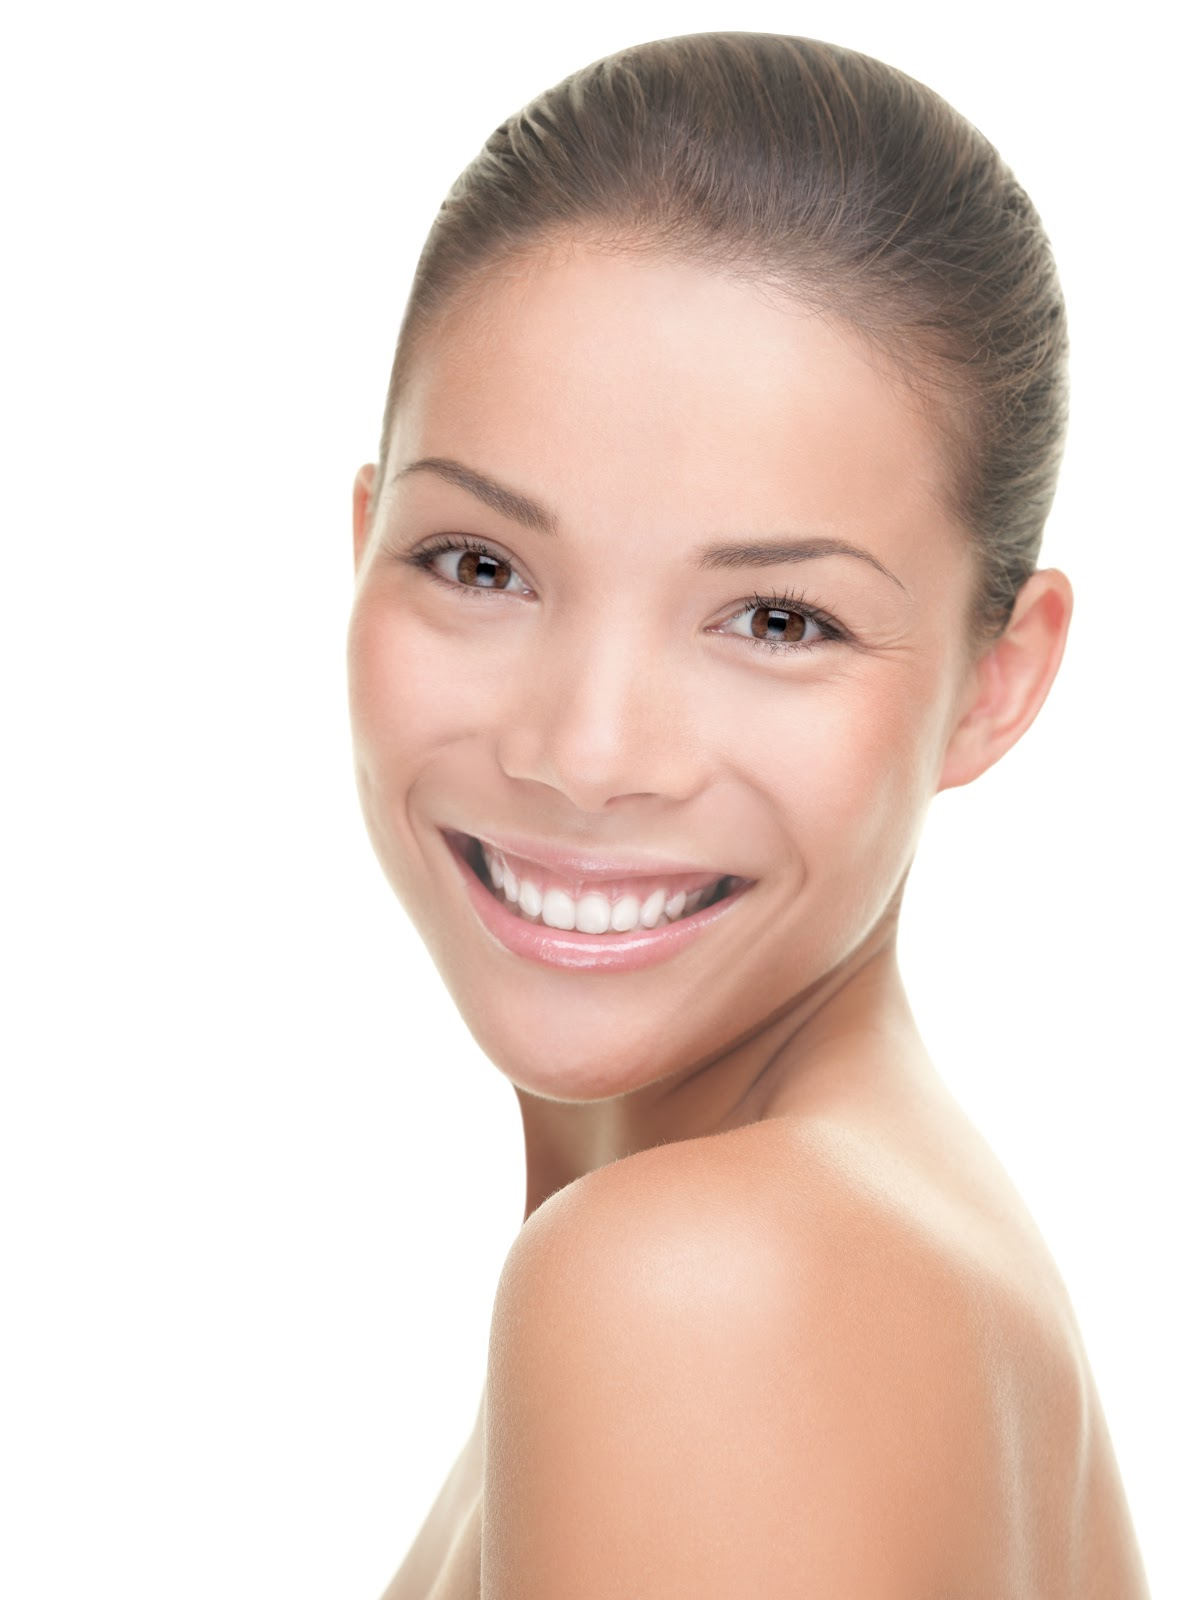 Dr. Alex's Blog: Can IPL Photofacial Treatments be Done on ...